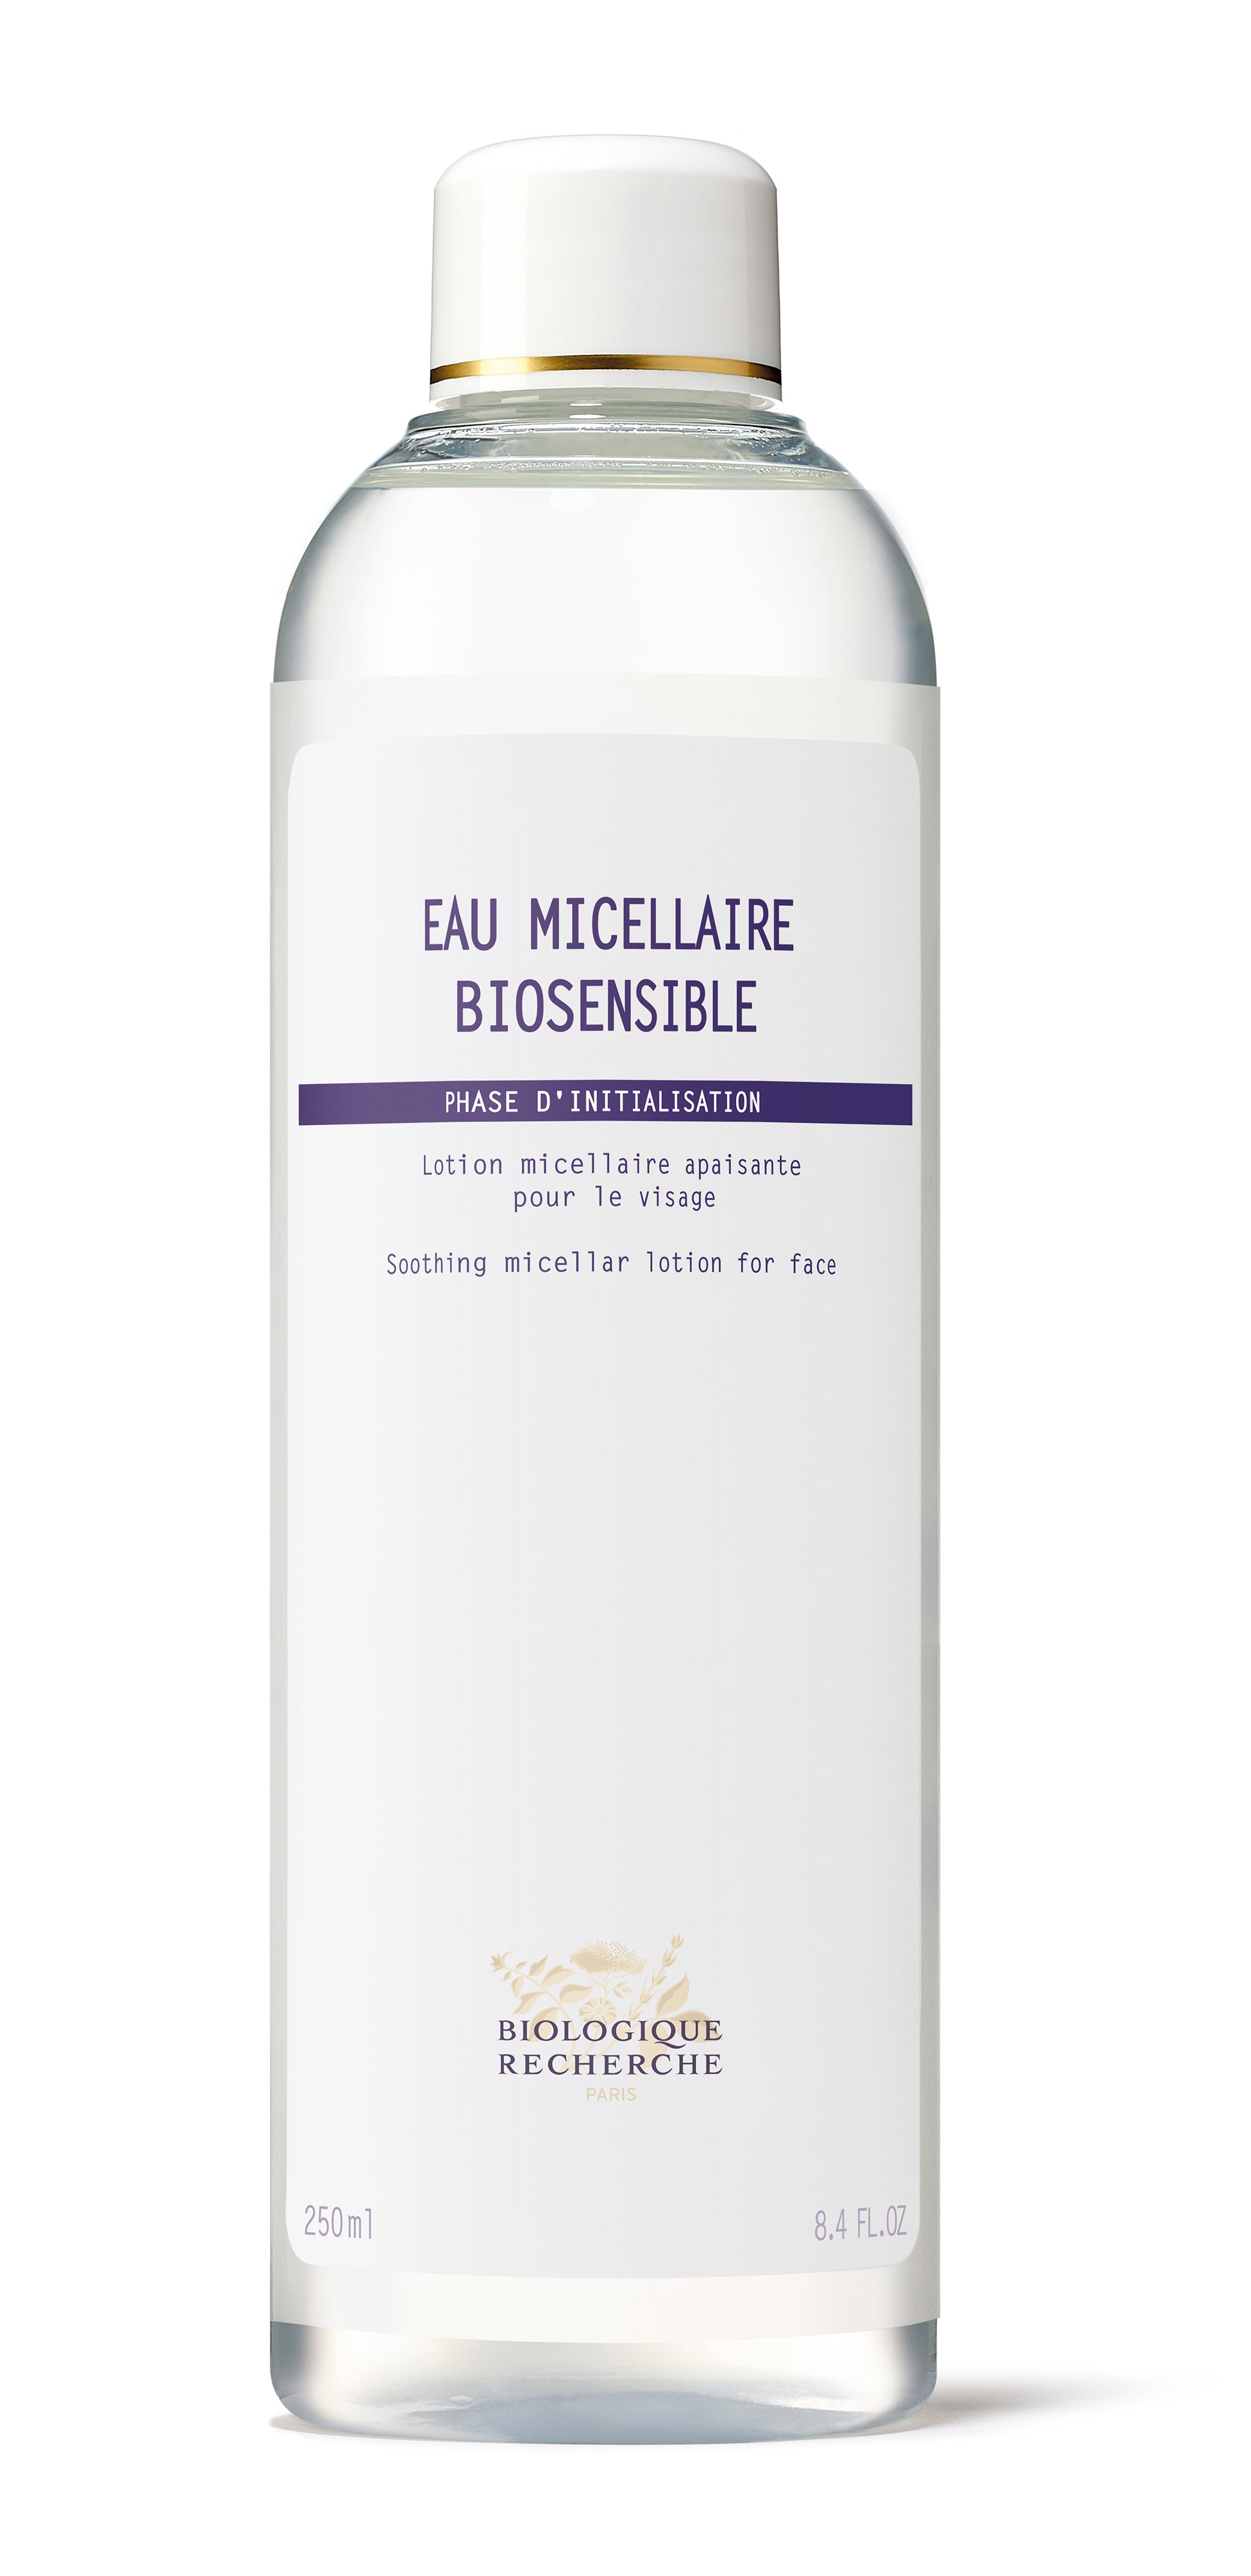 Eau Micellaire Biosensible -- Sensitive Reactive Skin ** 3.4oz | 8.4 oz